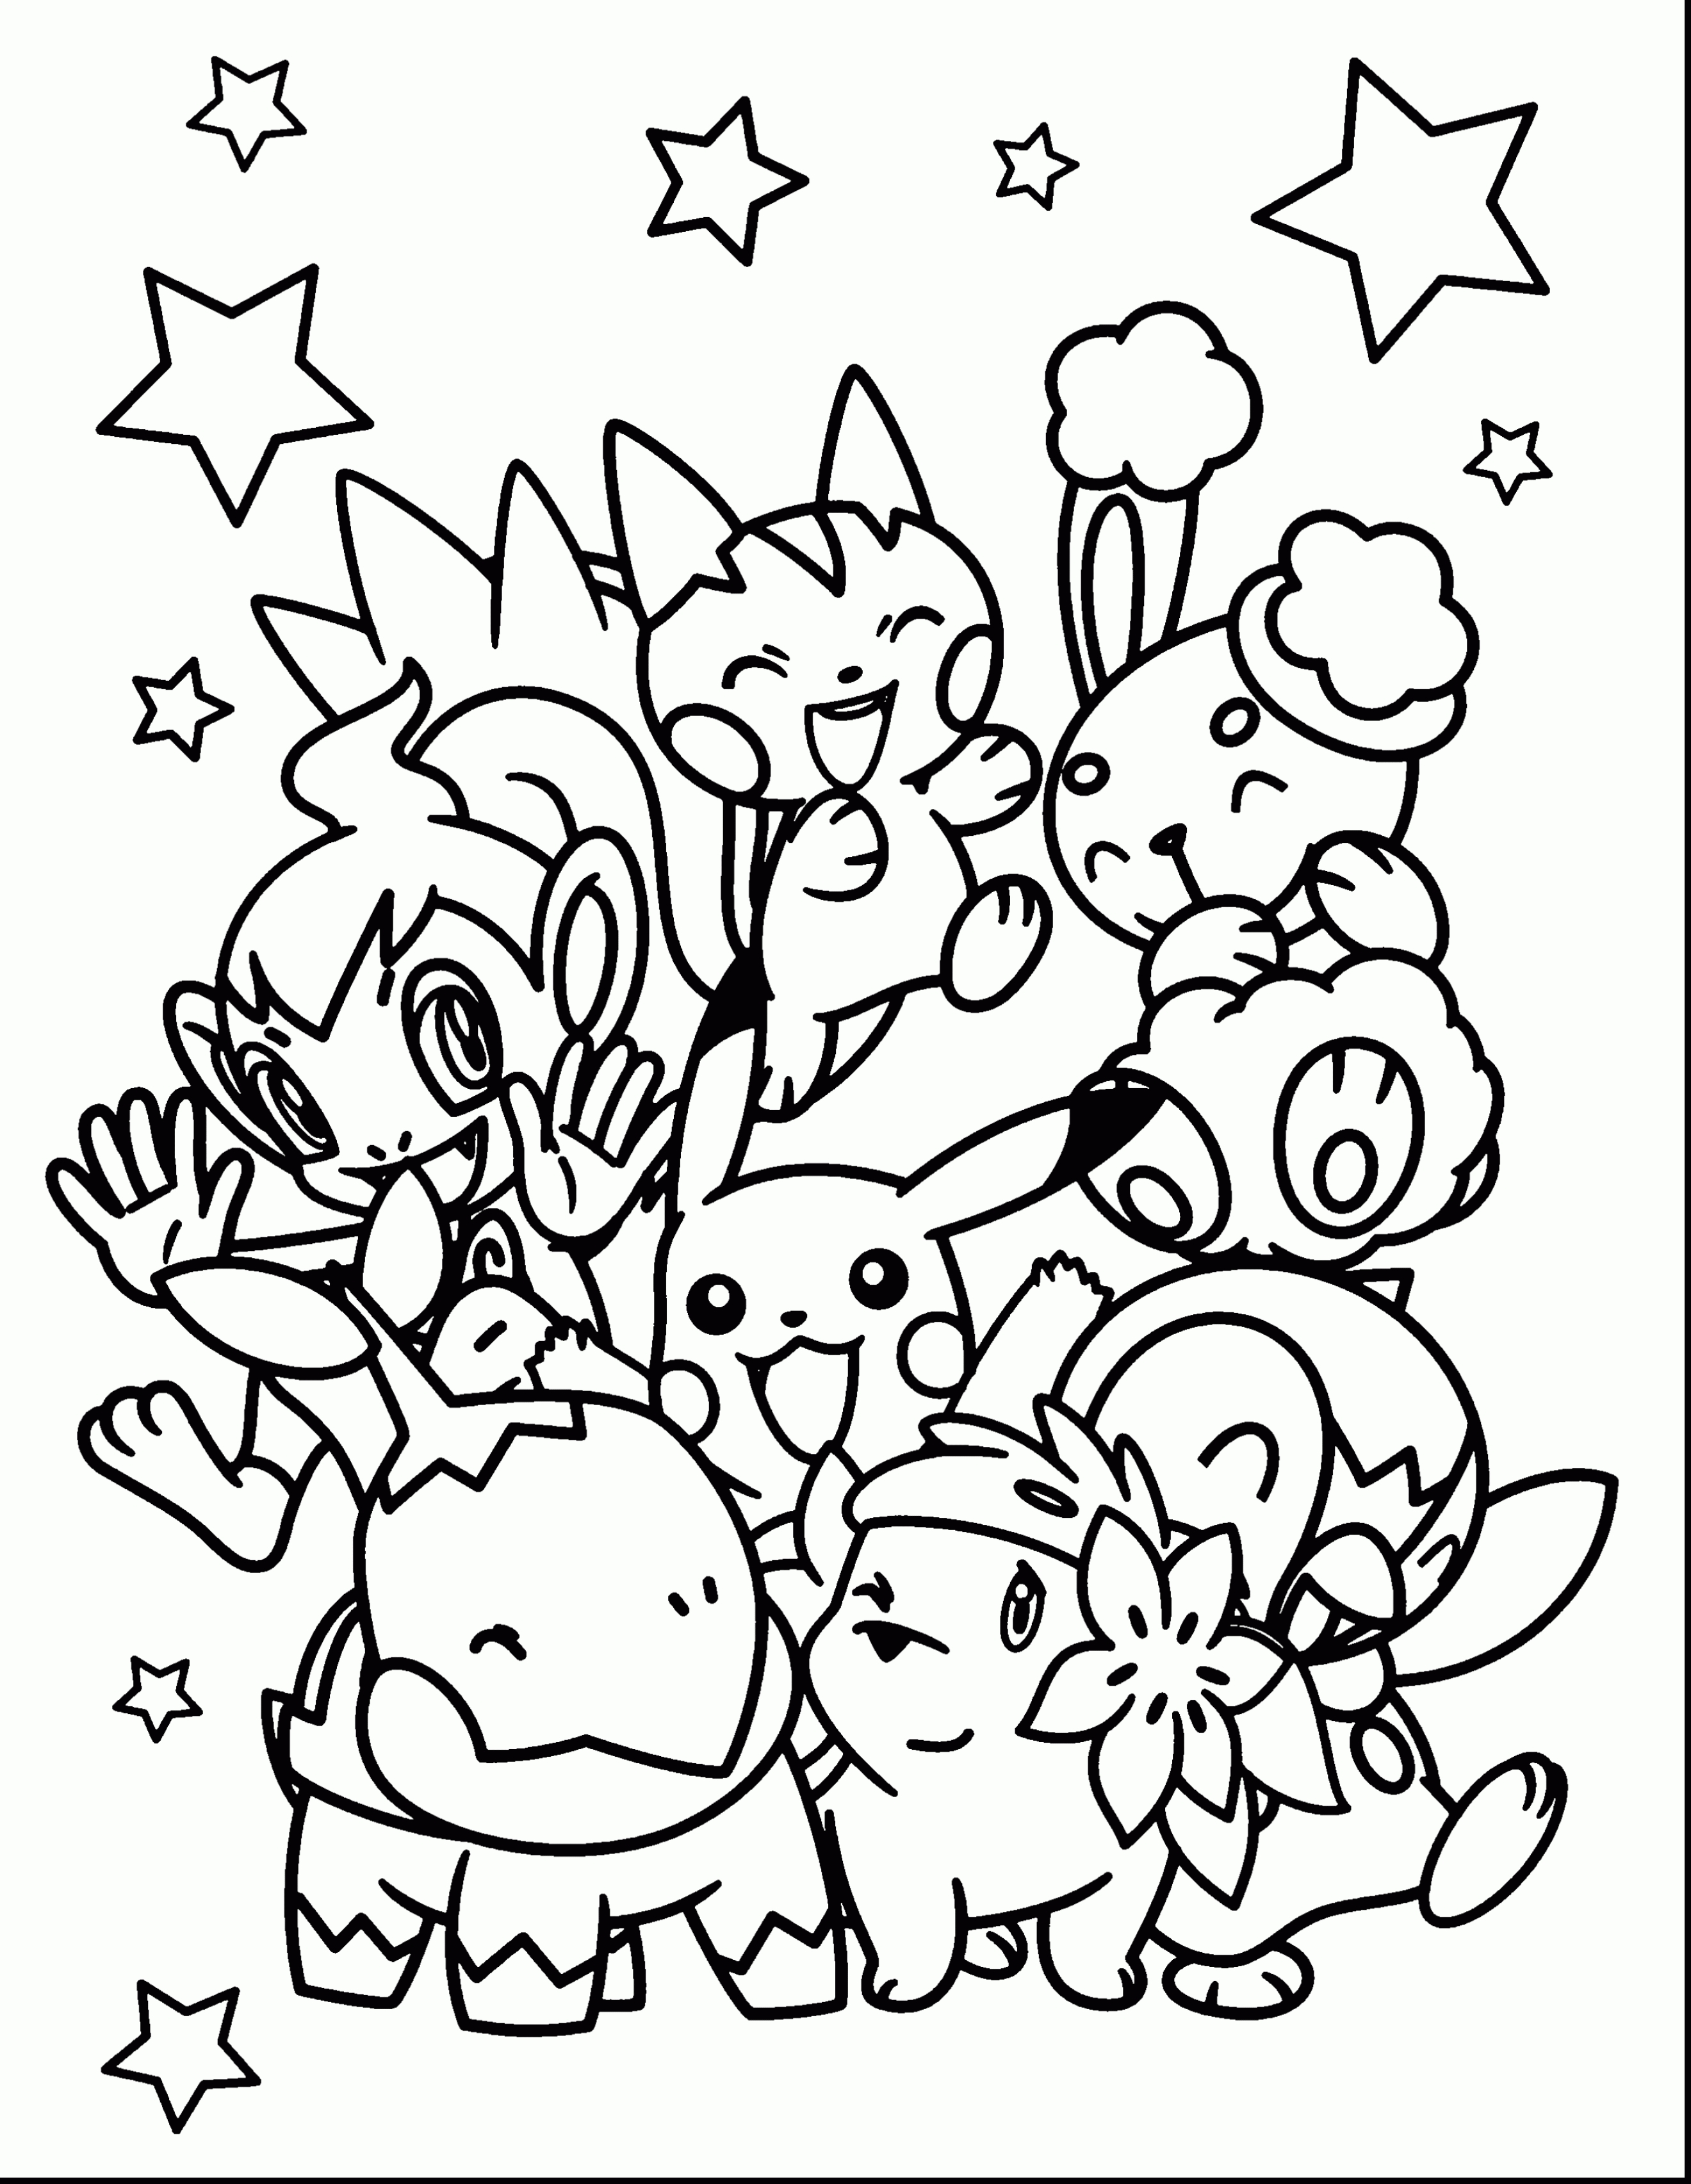 2640x3410 Best Of Cute Pokemon Coloring Pages Design Printable Coloring Sheet